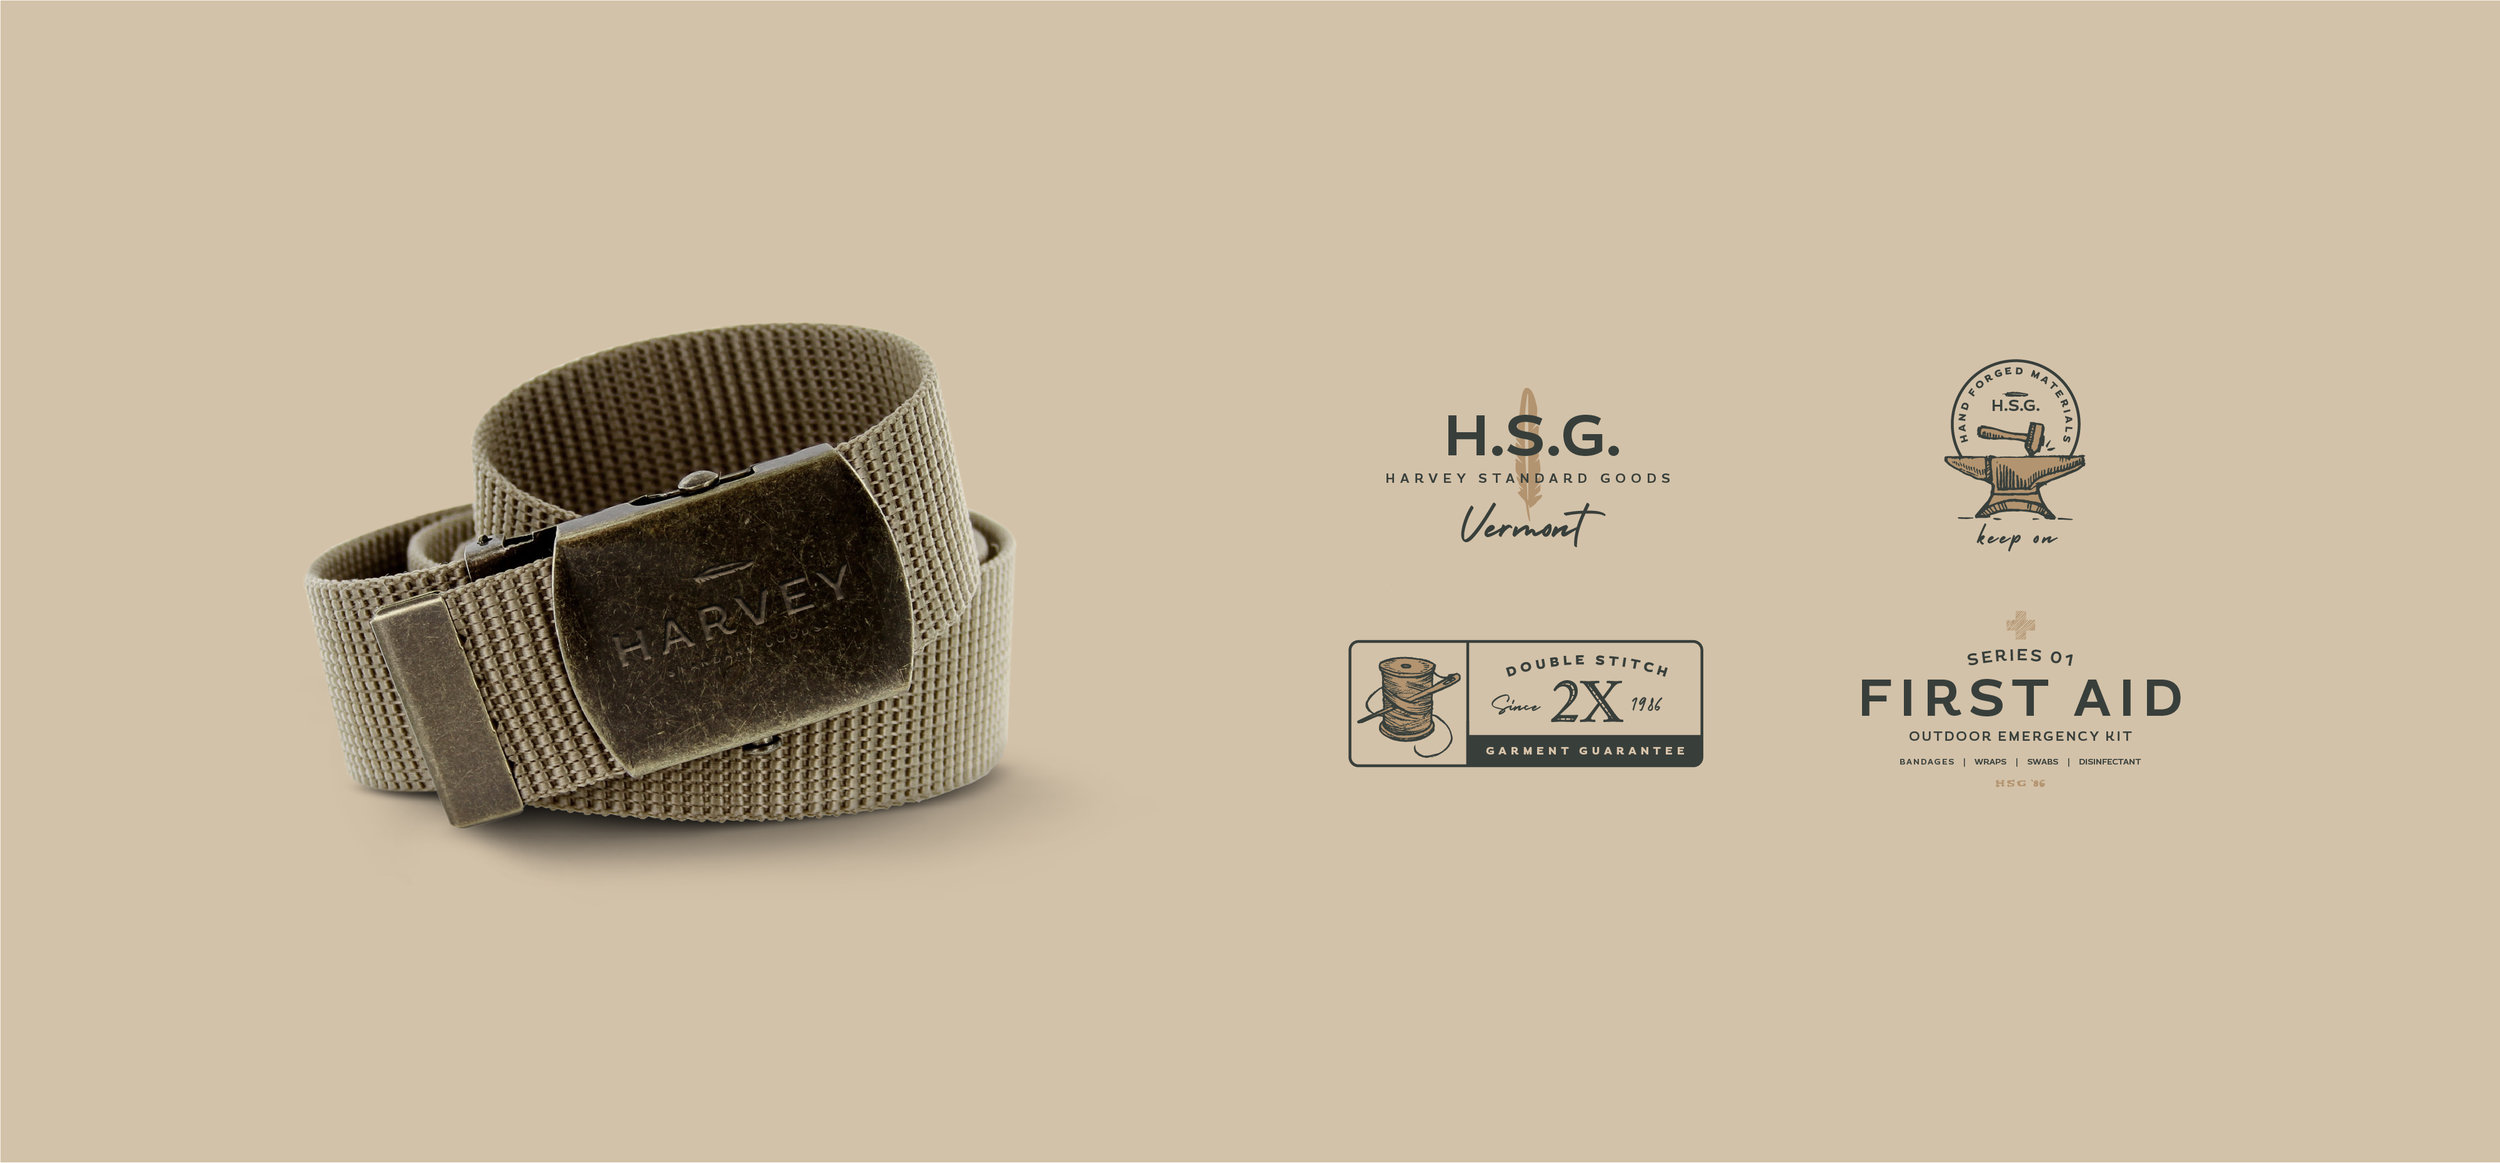 Wakeen-Design-Co-Harvey-Standard-Goods-09.jpg